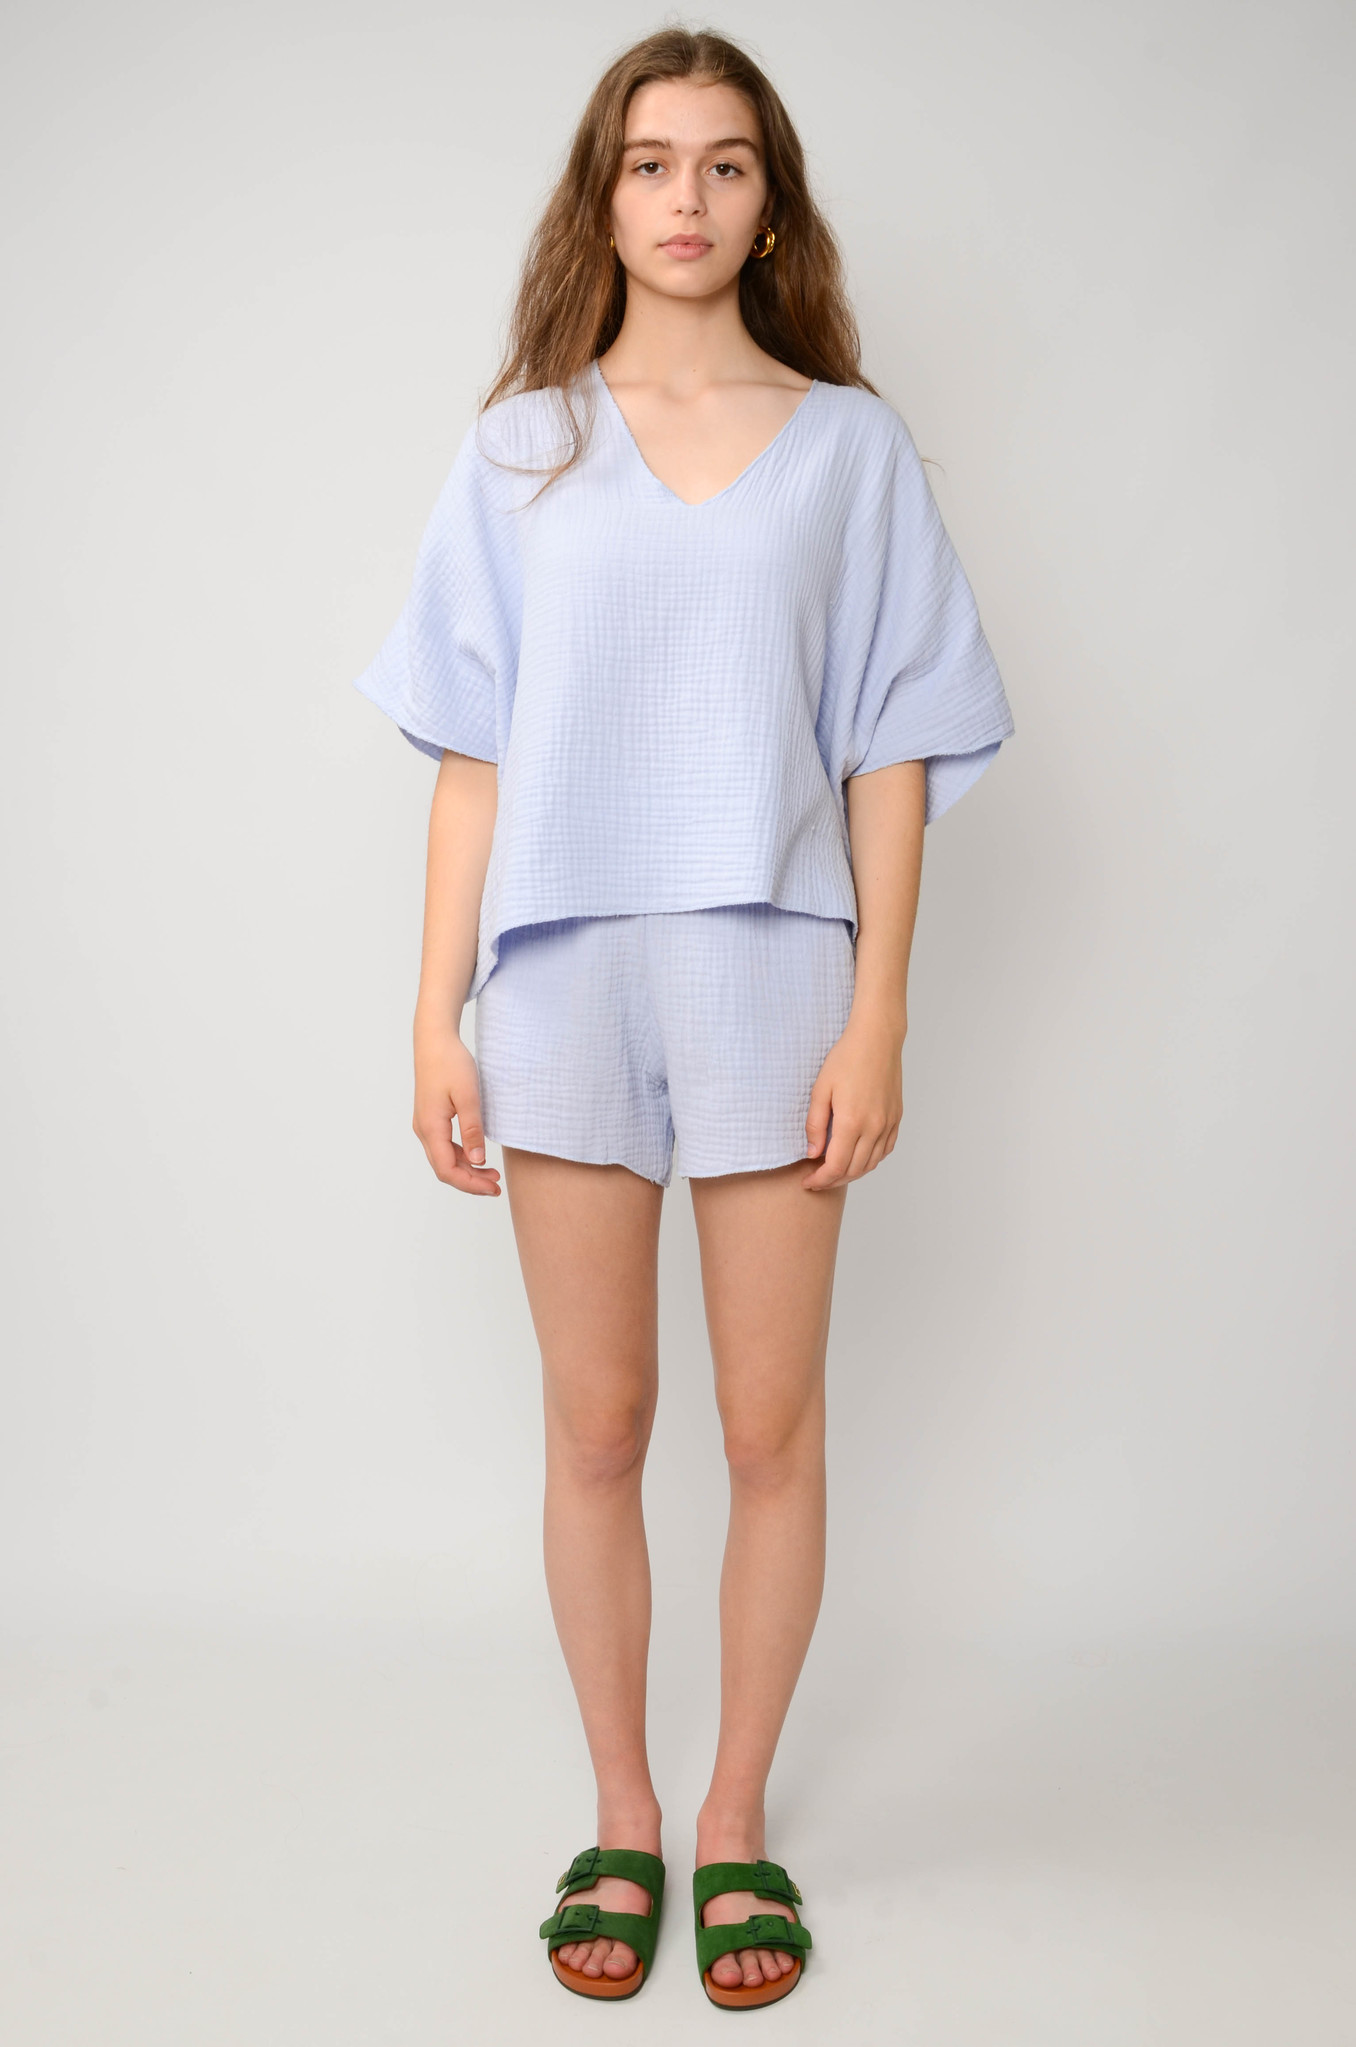 DATAI SHORTS IN ICE BLUE-2